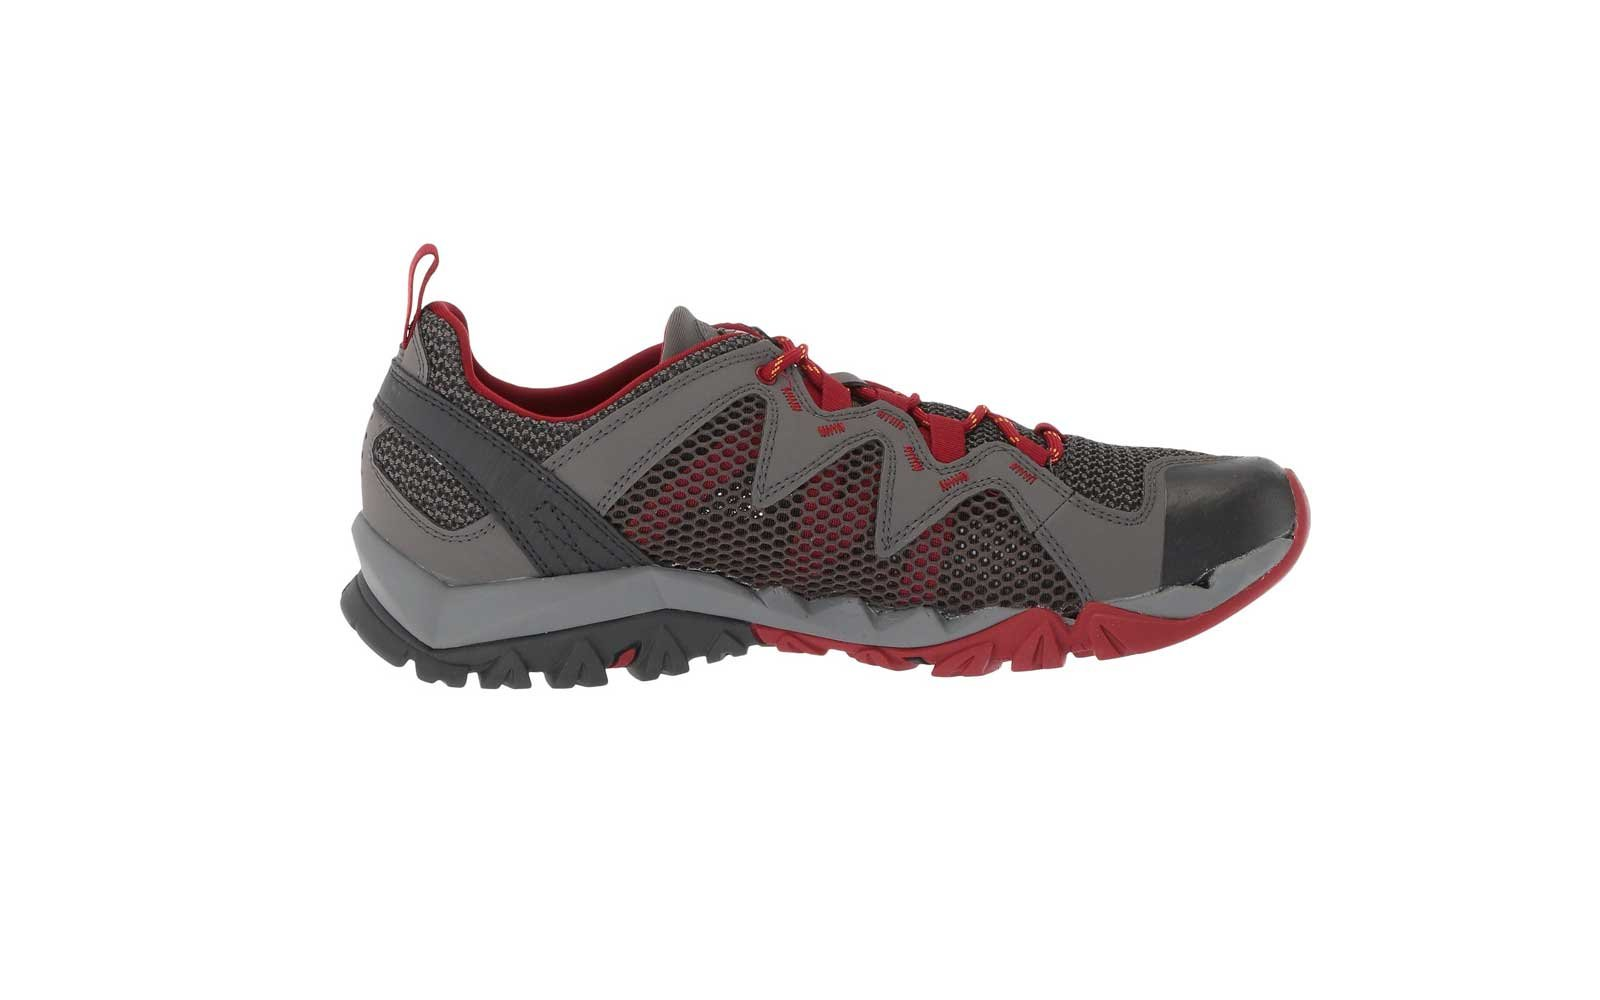 7b9835b0b682 Merrell  Tetrex Rapid Crest  Water Shoes